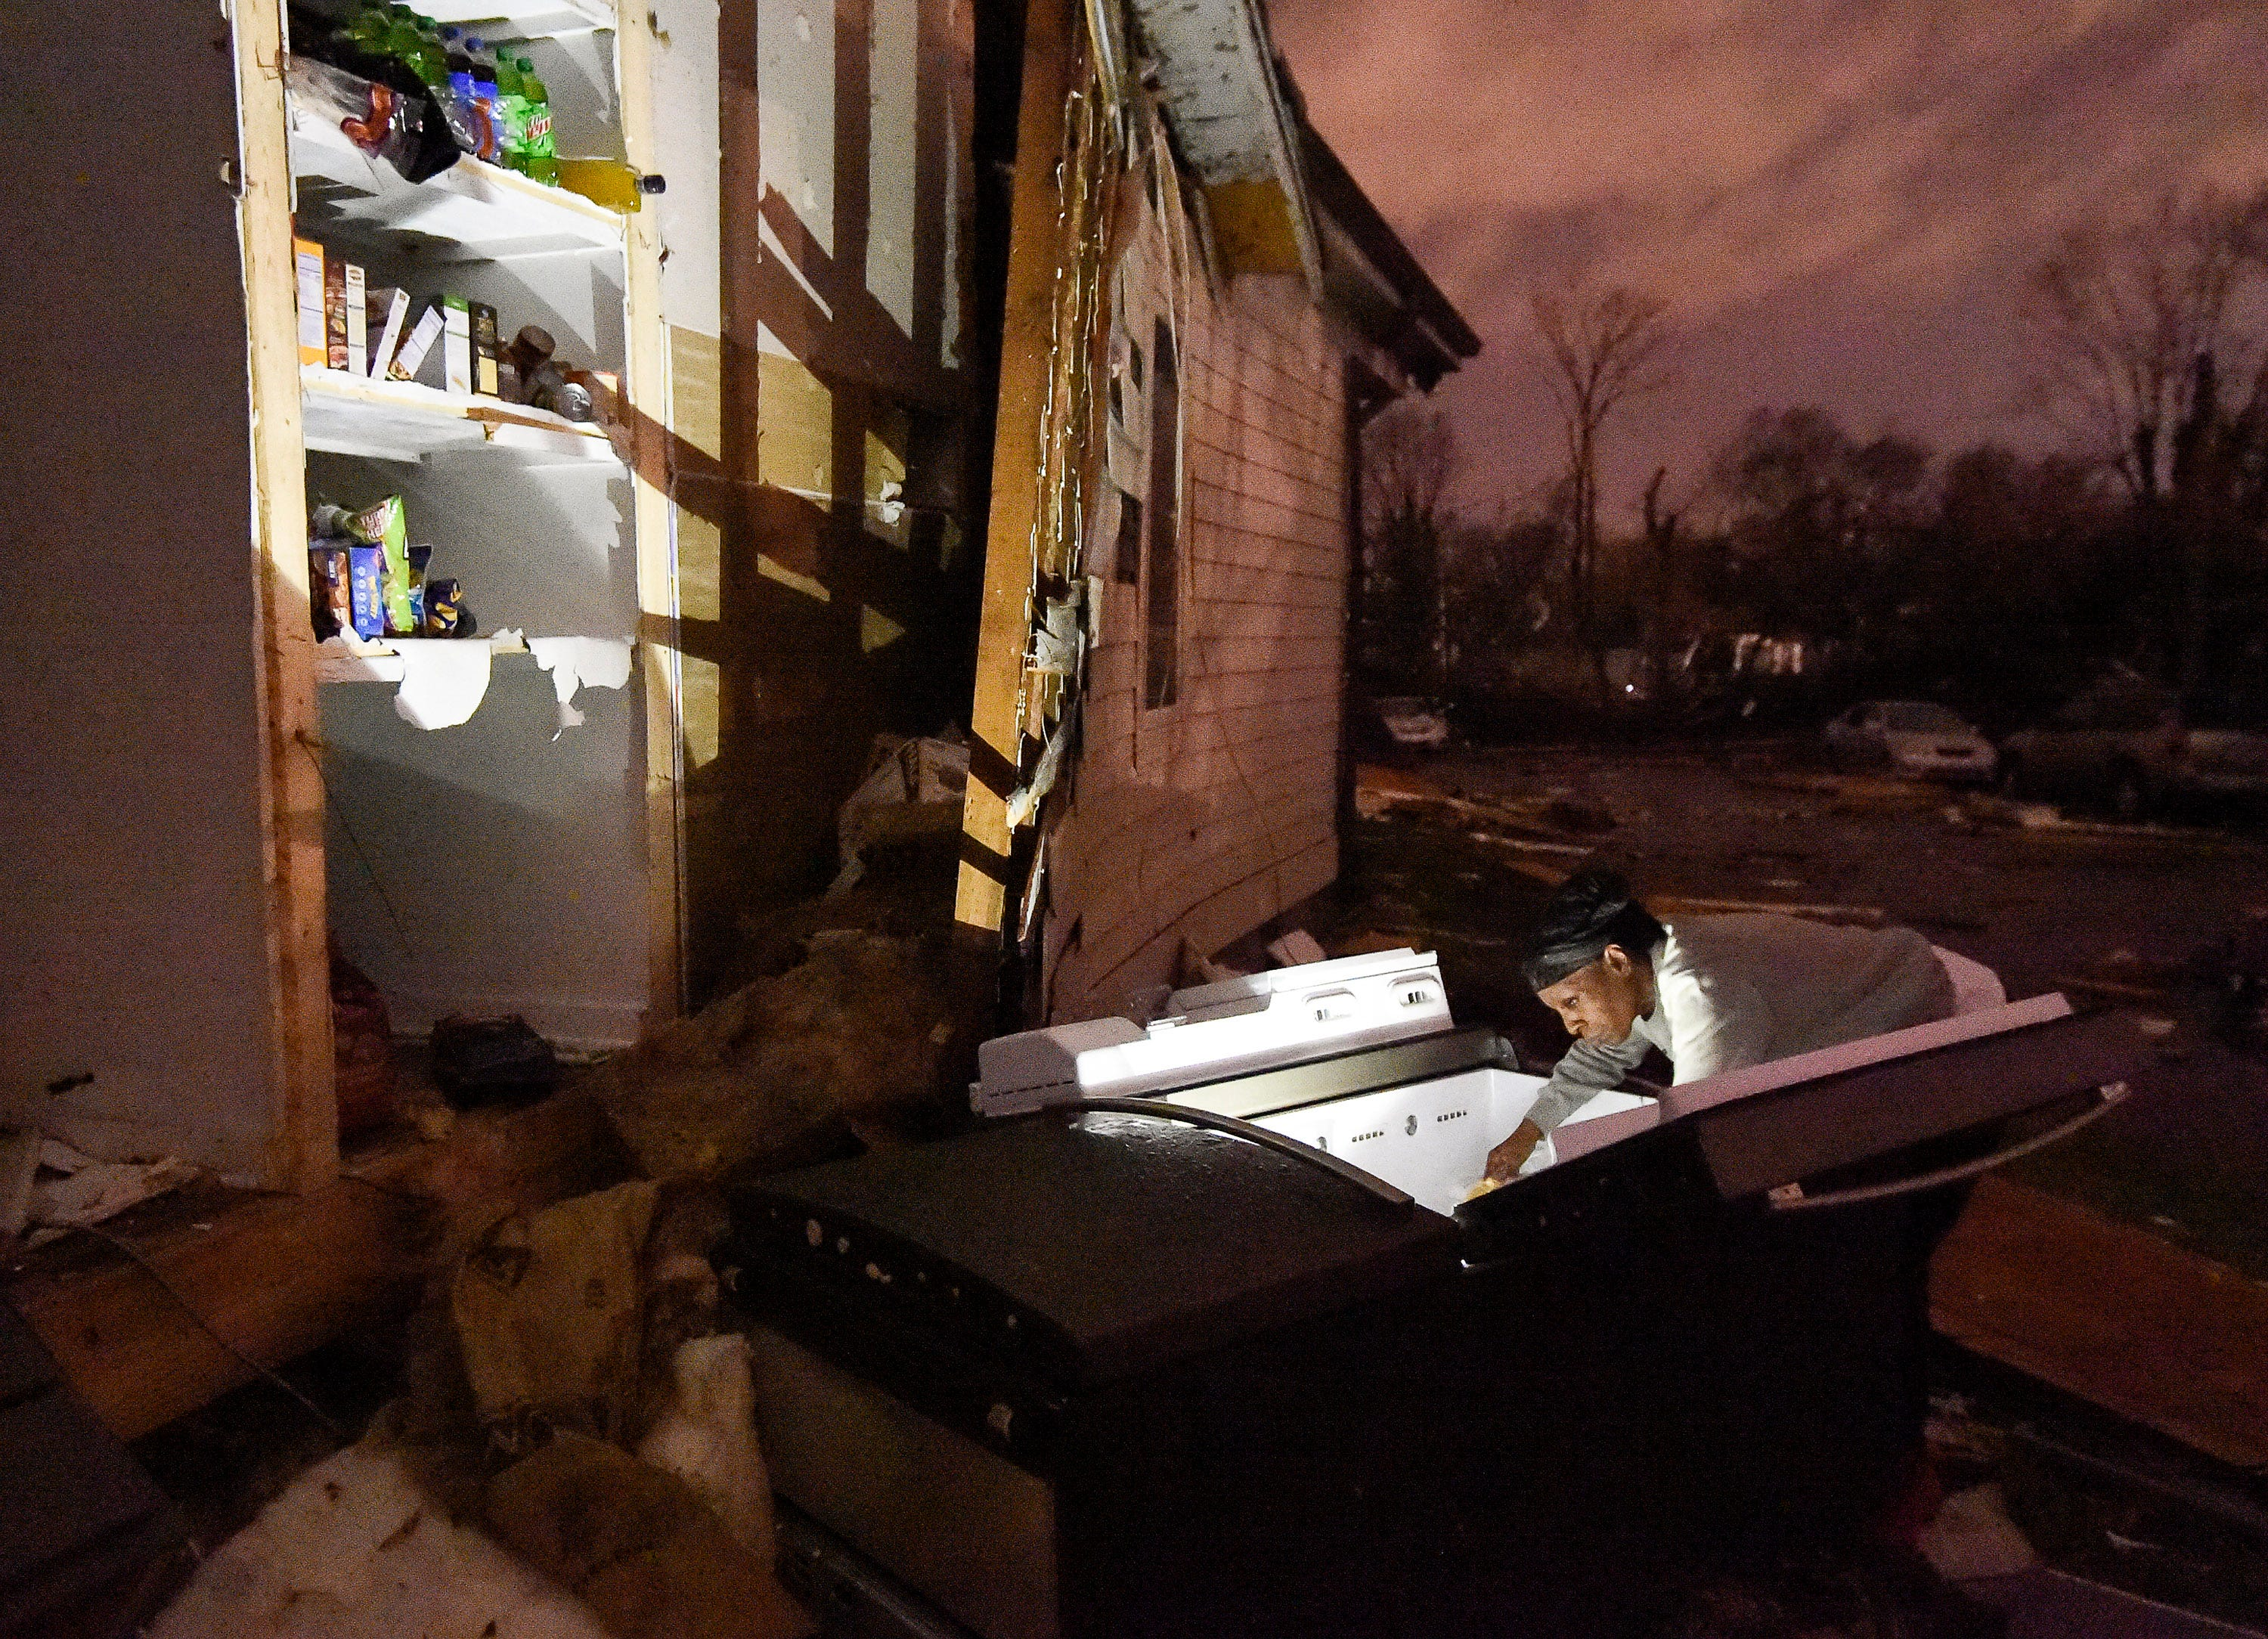 A woman looks through her refrigerator after it was ripped out of her home at Underwood St. and 16th Ave. N.